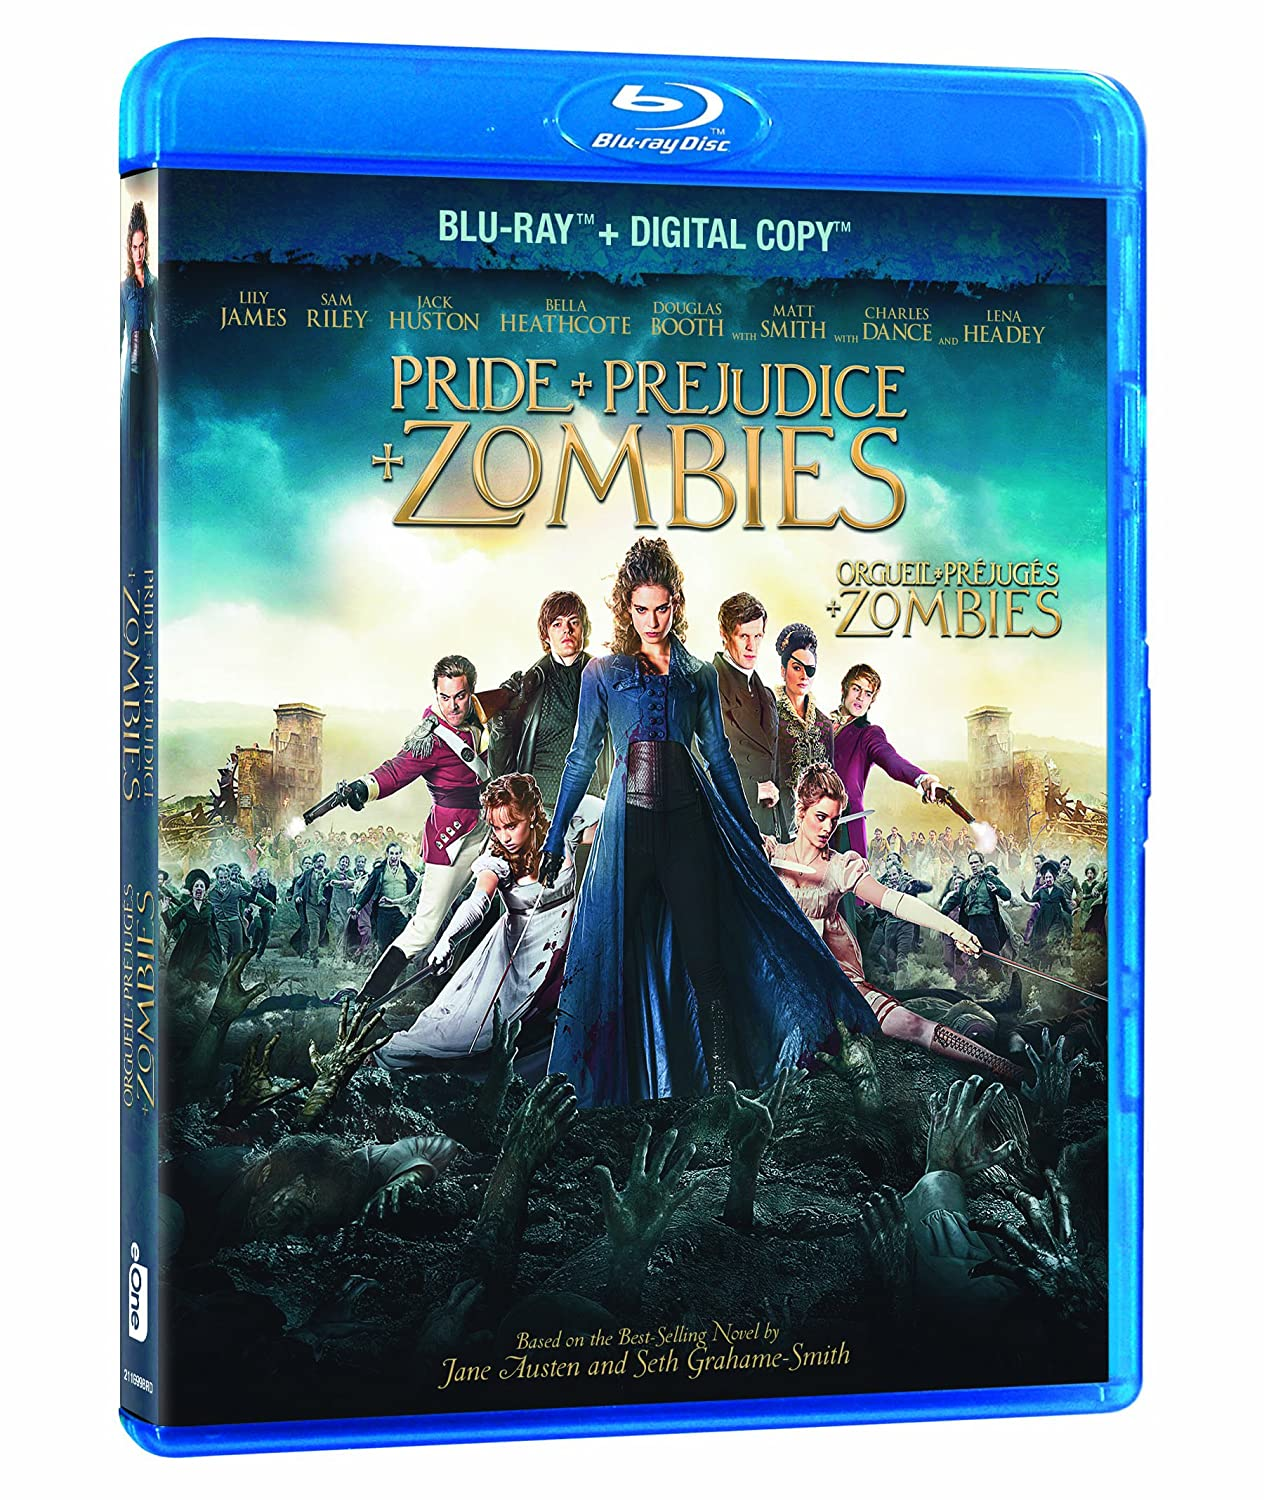 PRIDE Arrives on Blu-ray, DVD and Digital HD for the Holidays